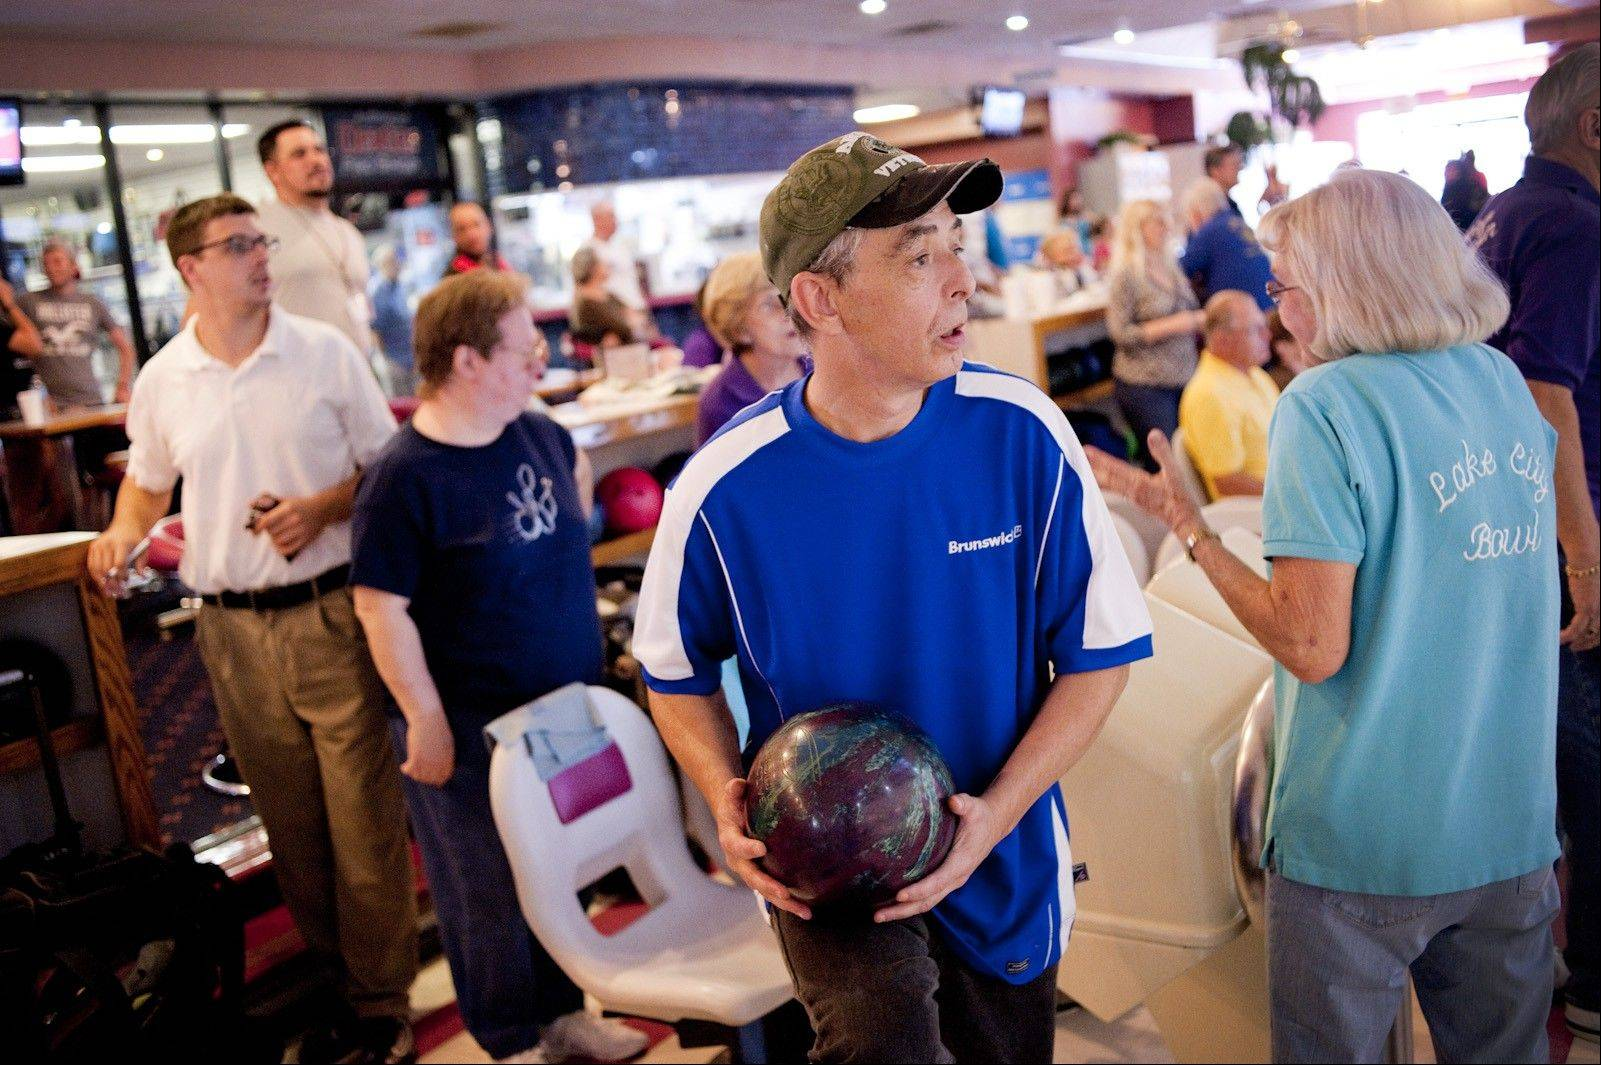 Henry Svetina is legally blind, but that does not deter him from his passion to bowl. Svetina paired up with some of his favorite pro bowlers during a recent Professional Bowlers Association Pro-Am event.